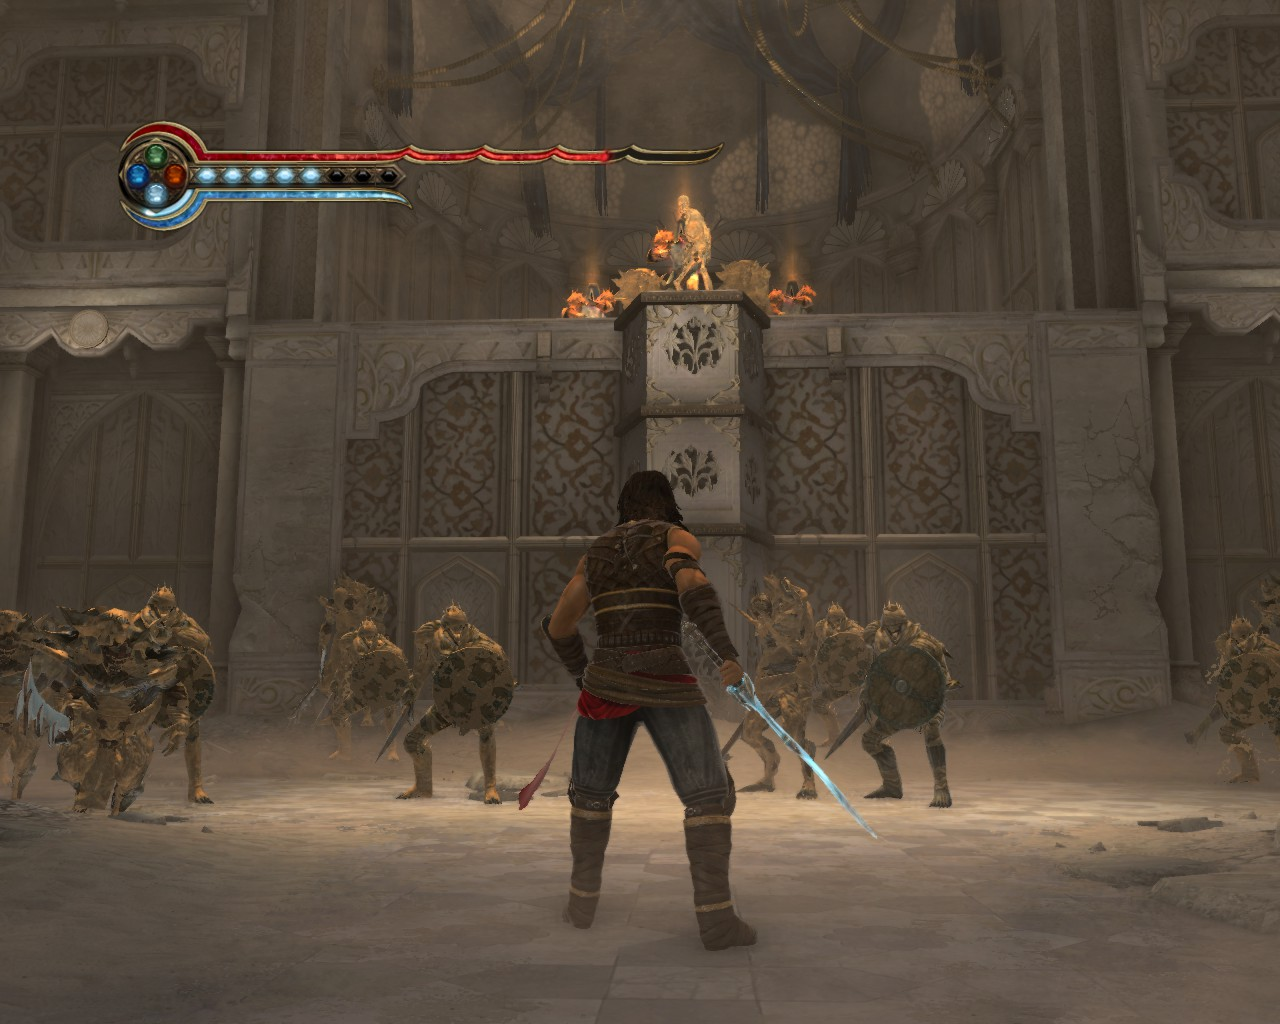 Prince of Persia 2014-06-04 19-57-42-88.jpg - Prince of Persia: The Forgotten Sands